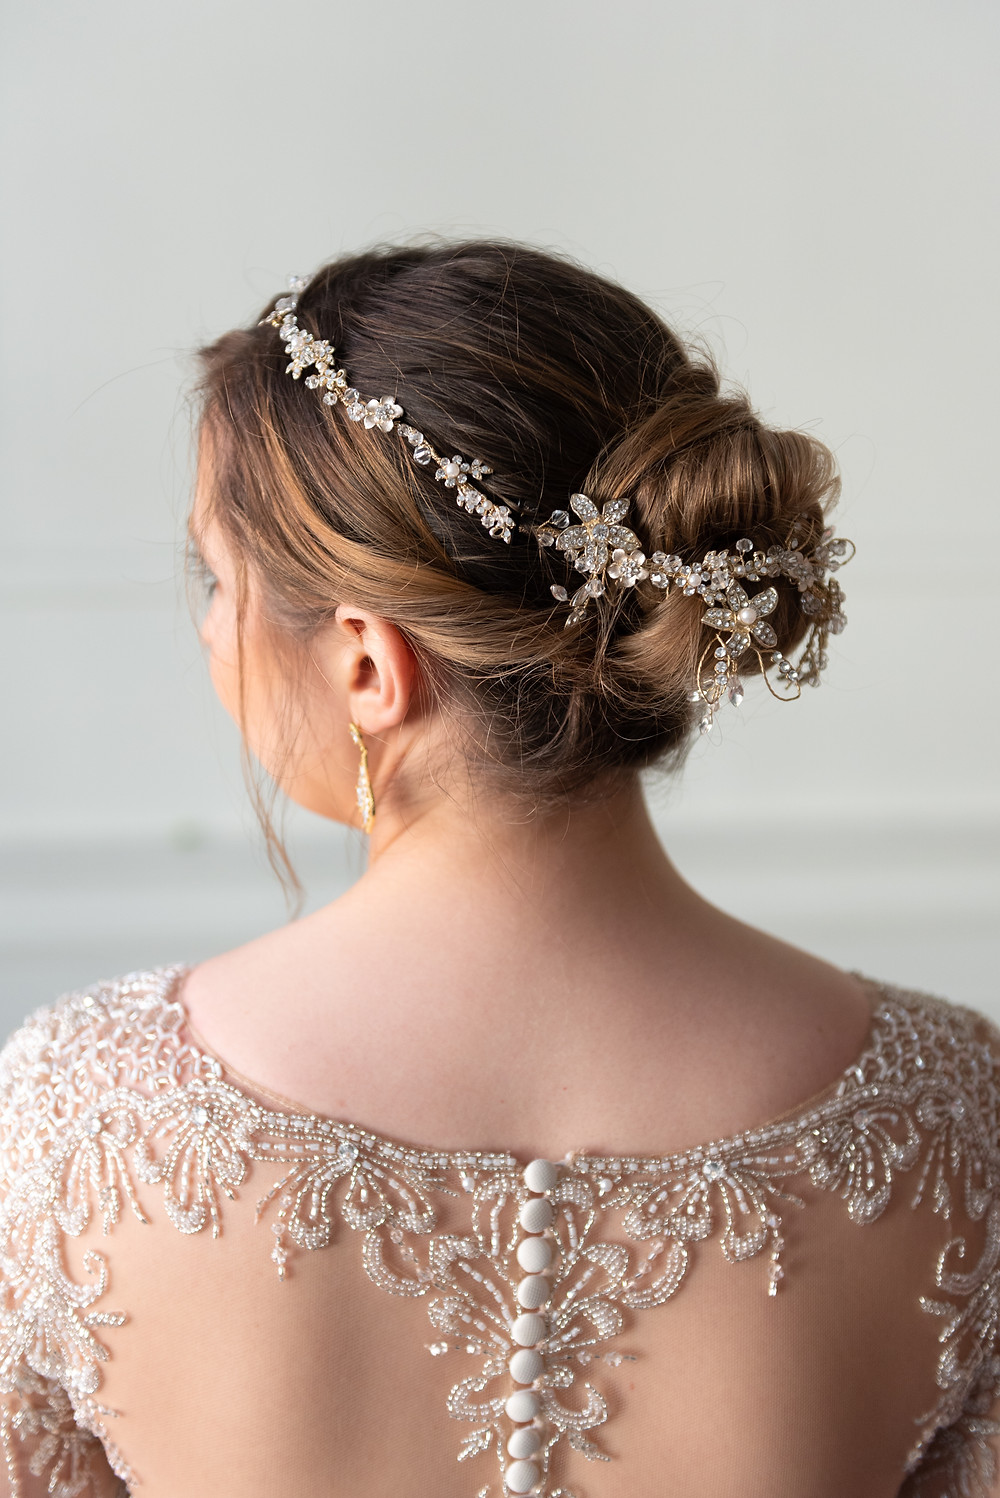 Bridal hair updo with gold head piece